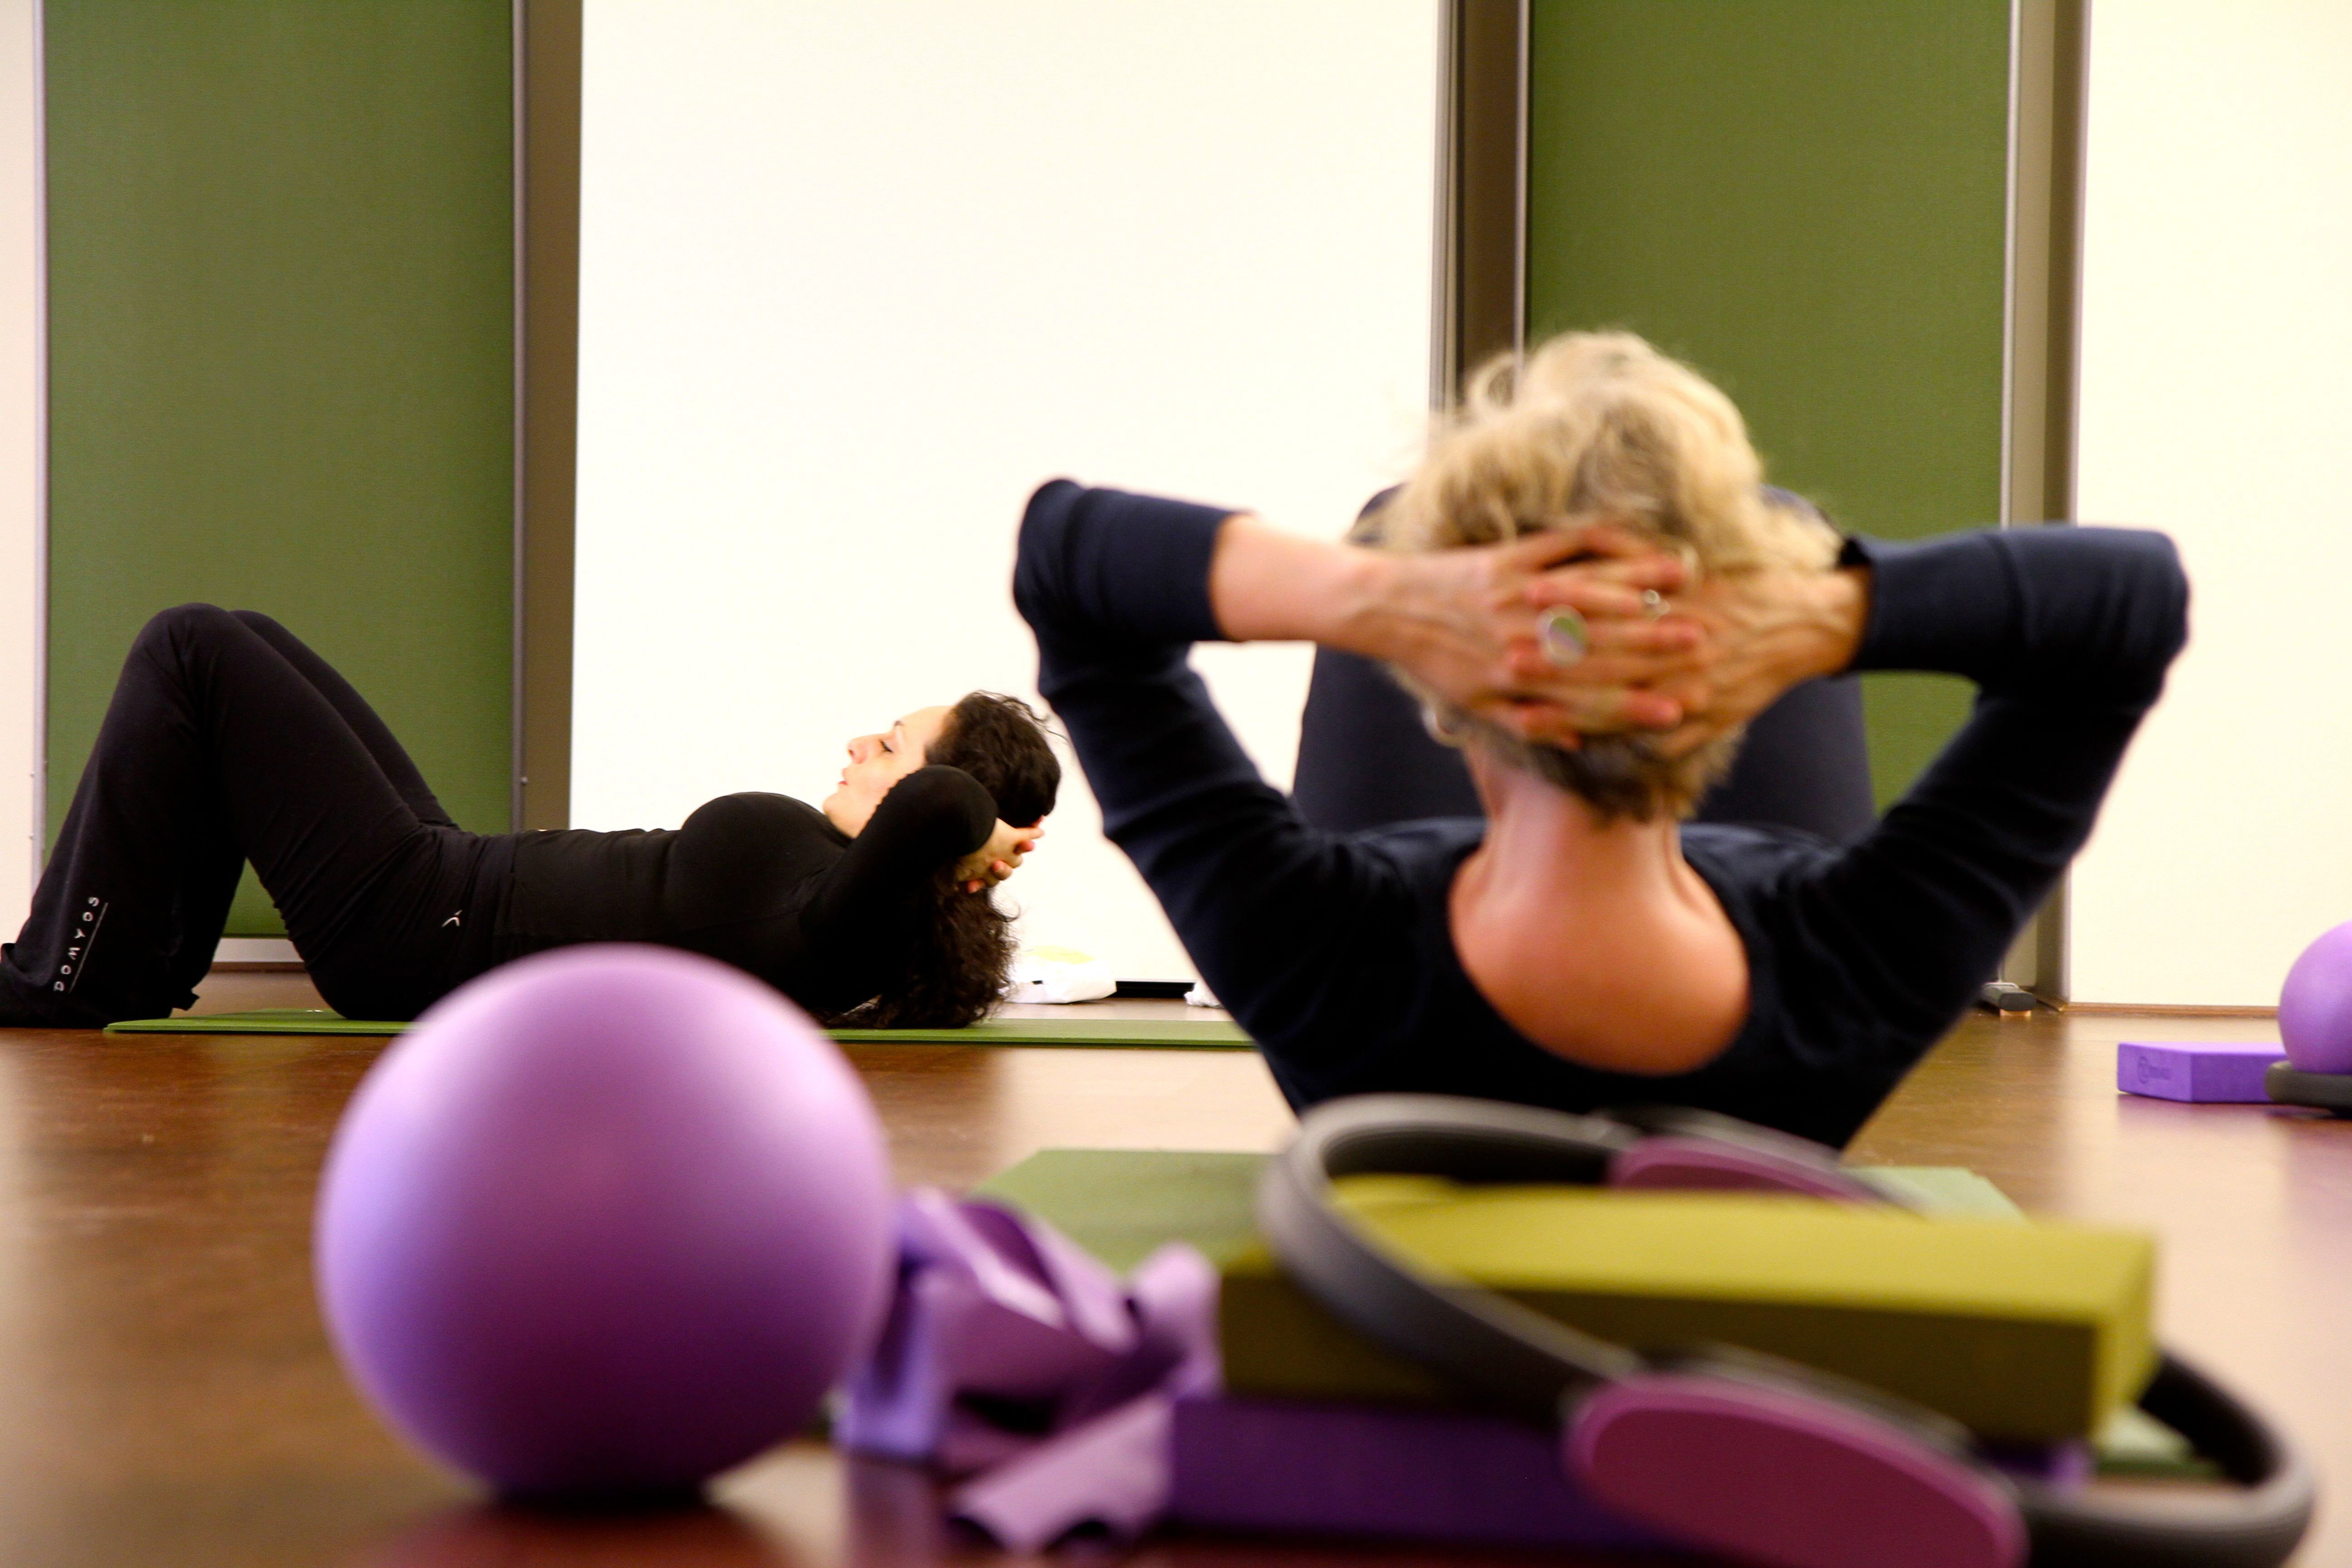 Pilates Technique Workshop with Claudia Fischer at Embody Wellness, South London